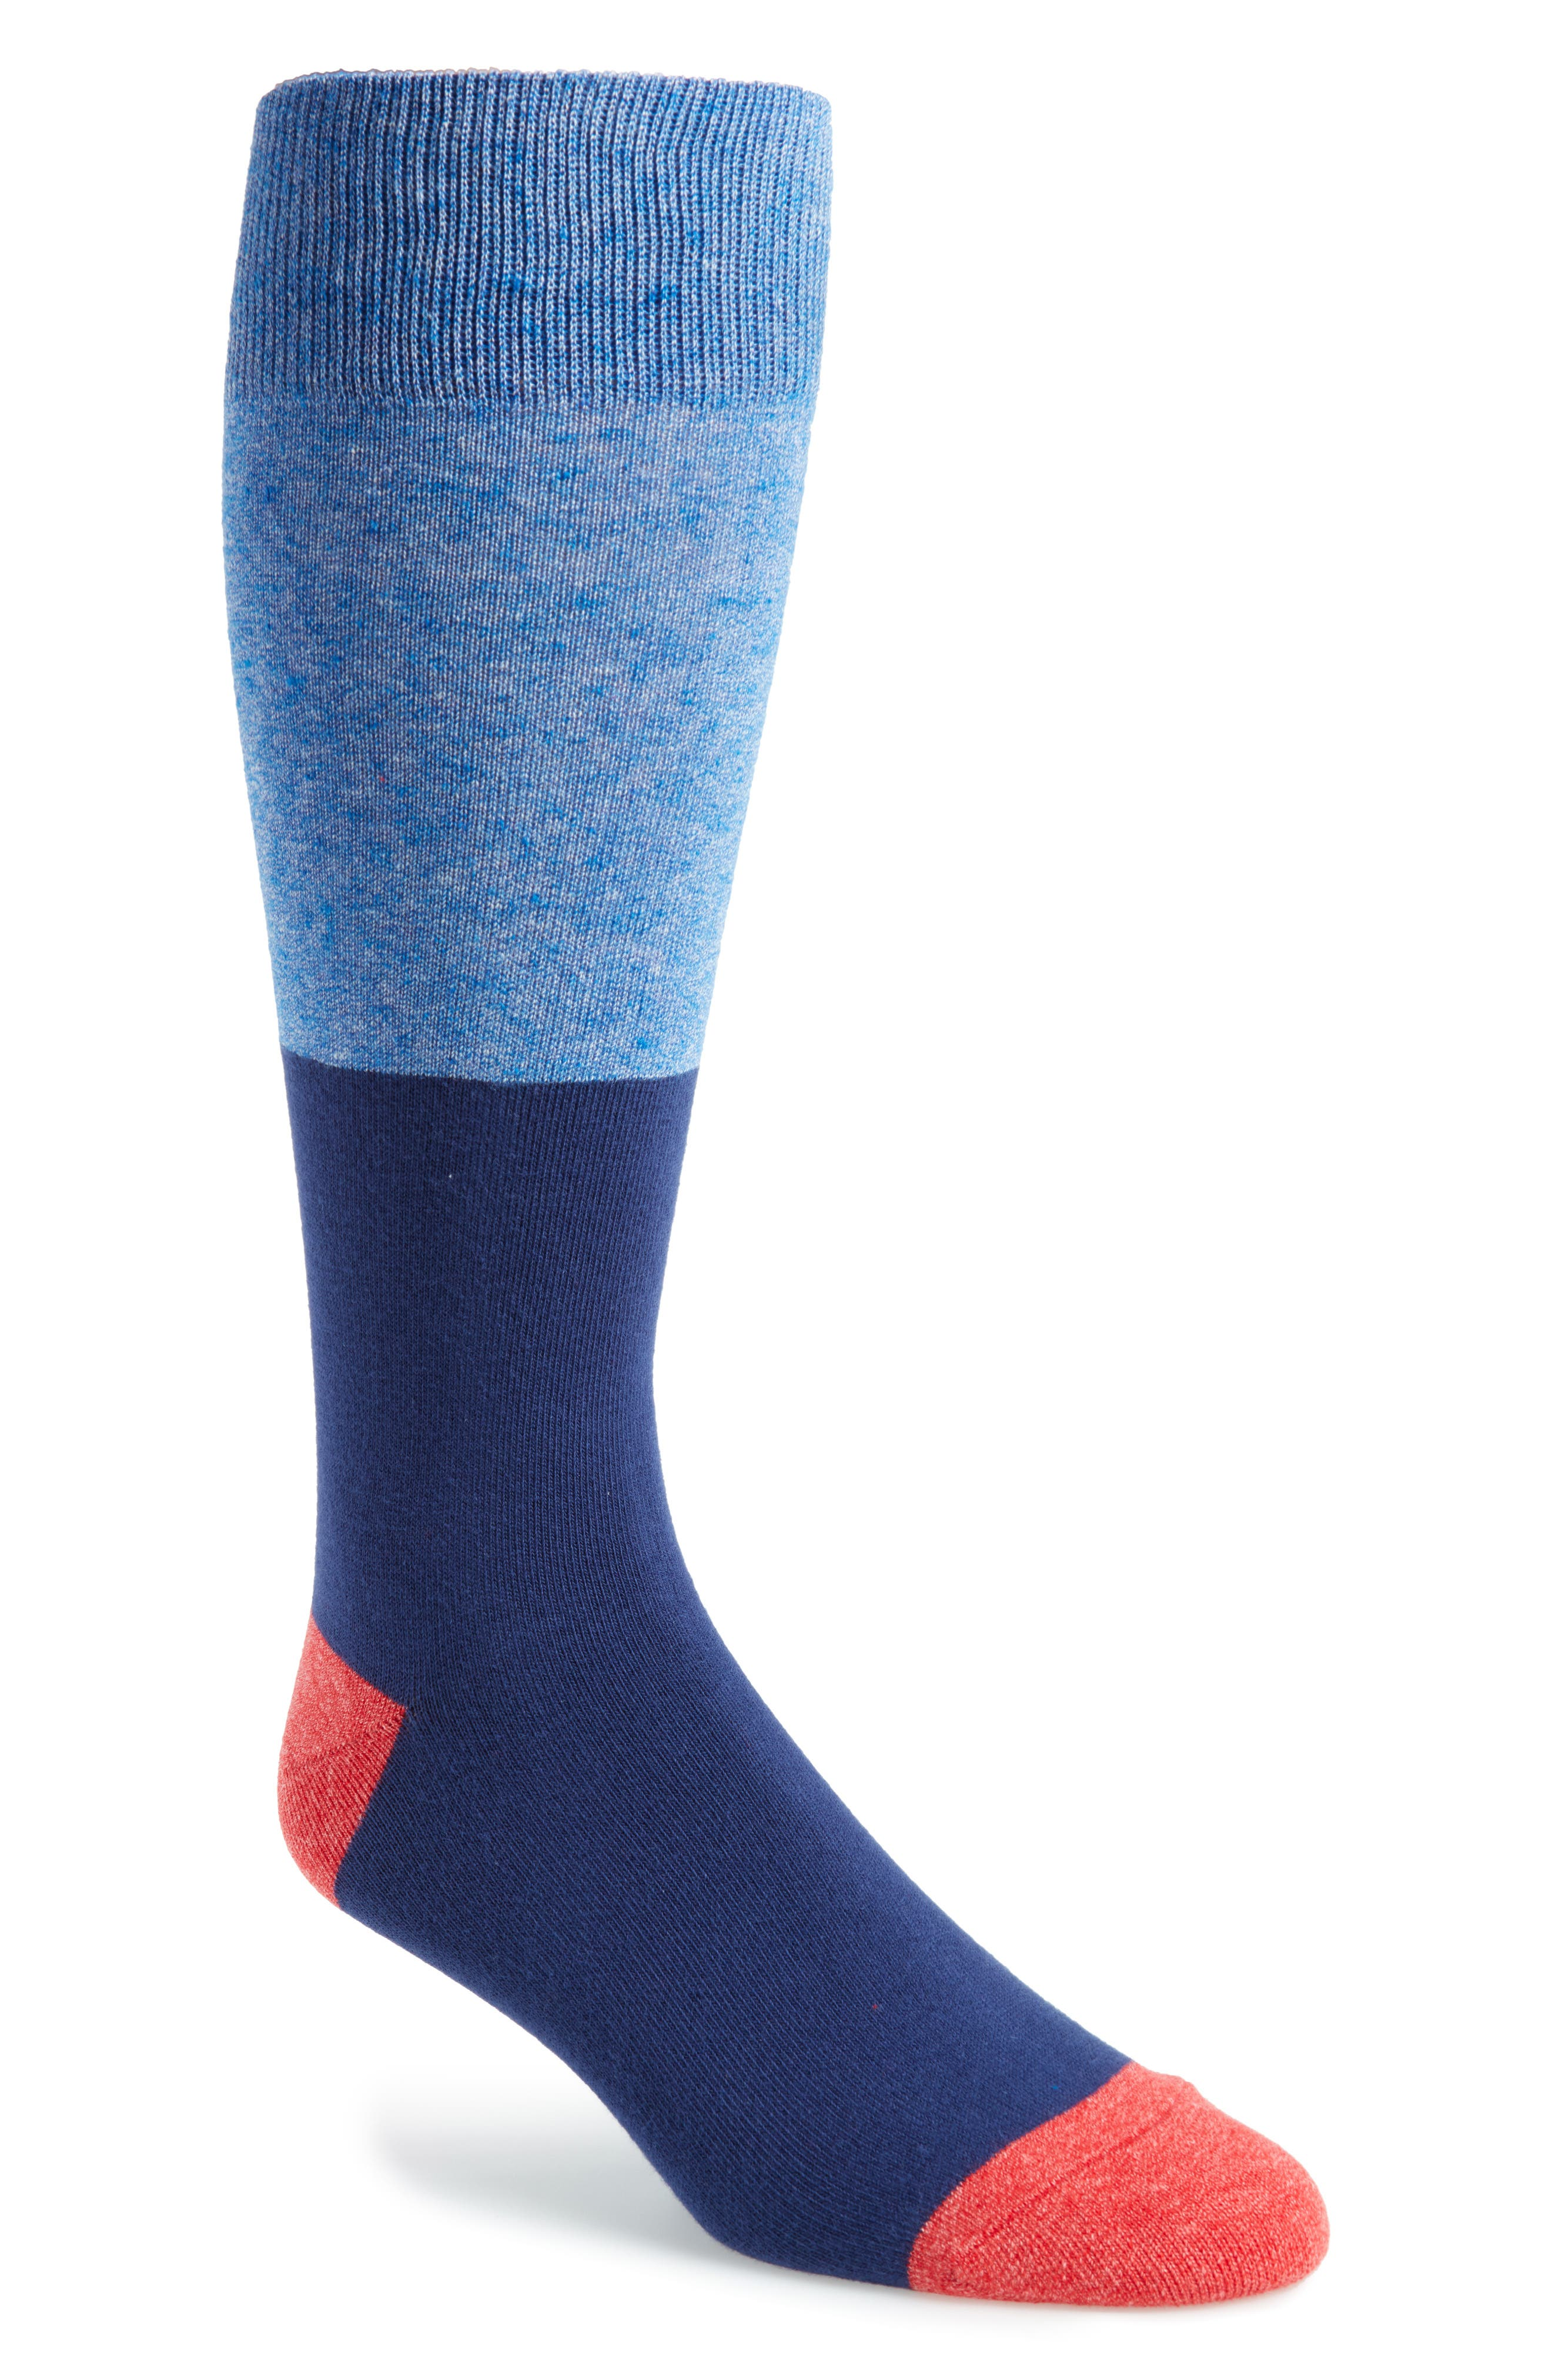 Calibrate Colorblock Socks